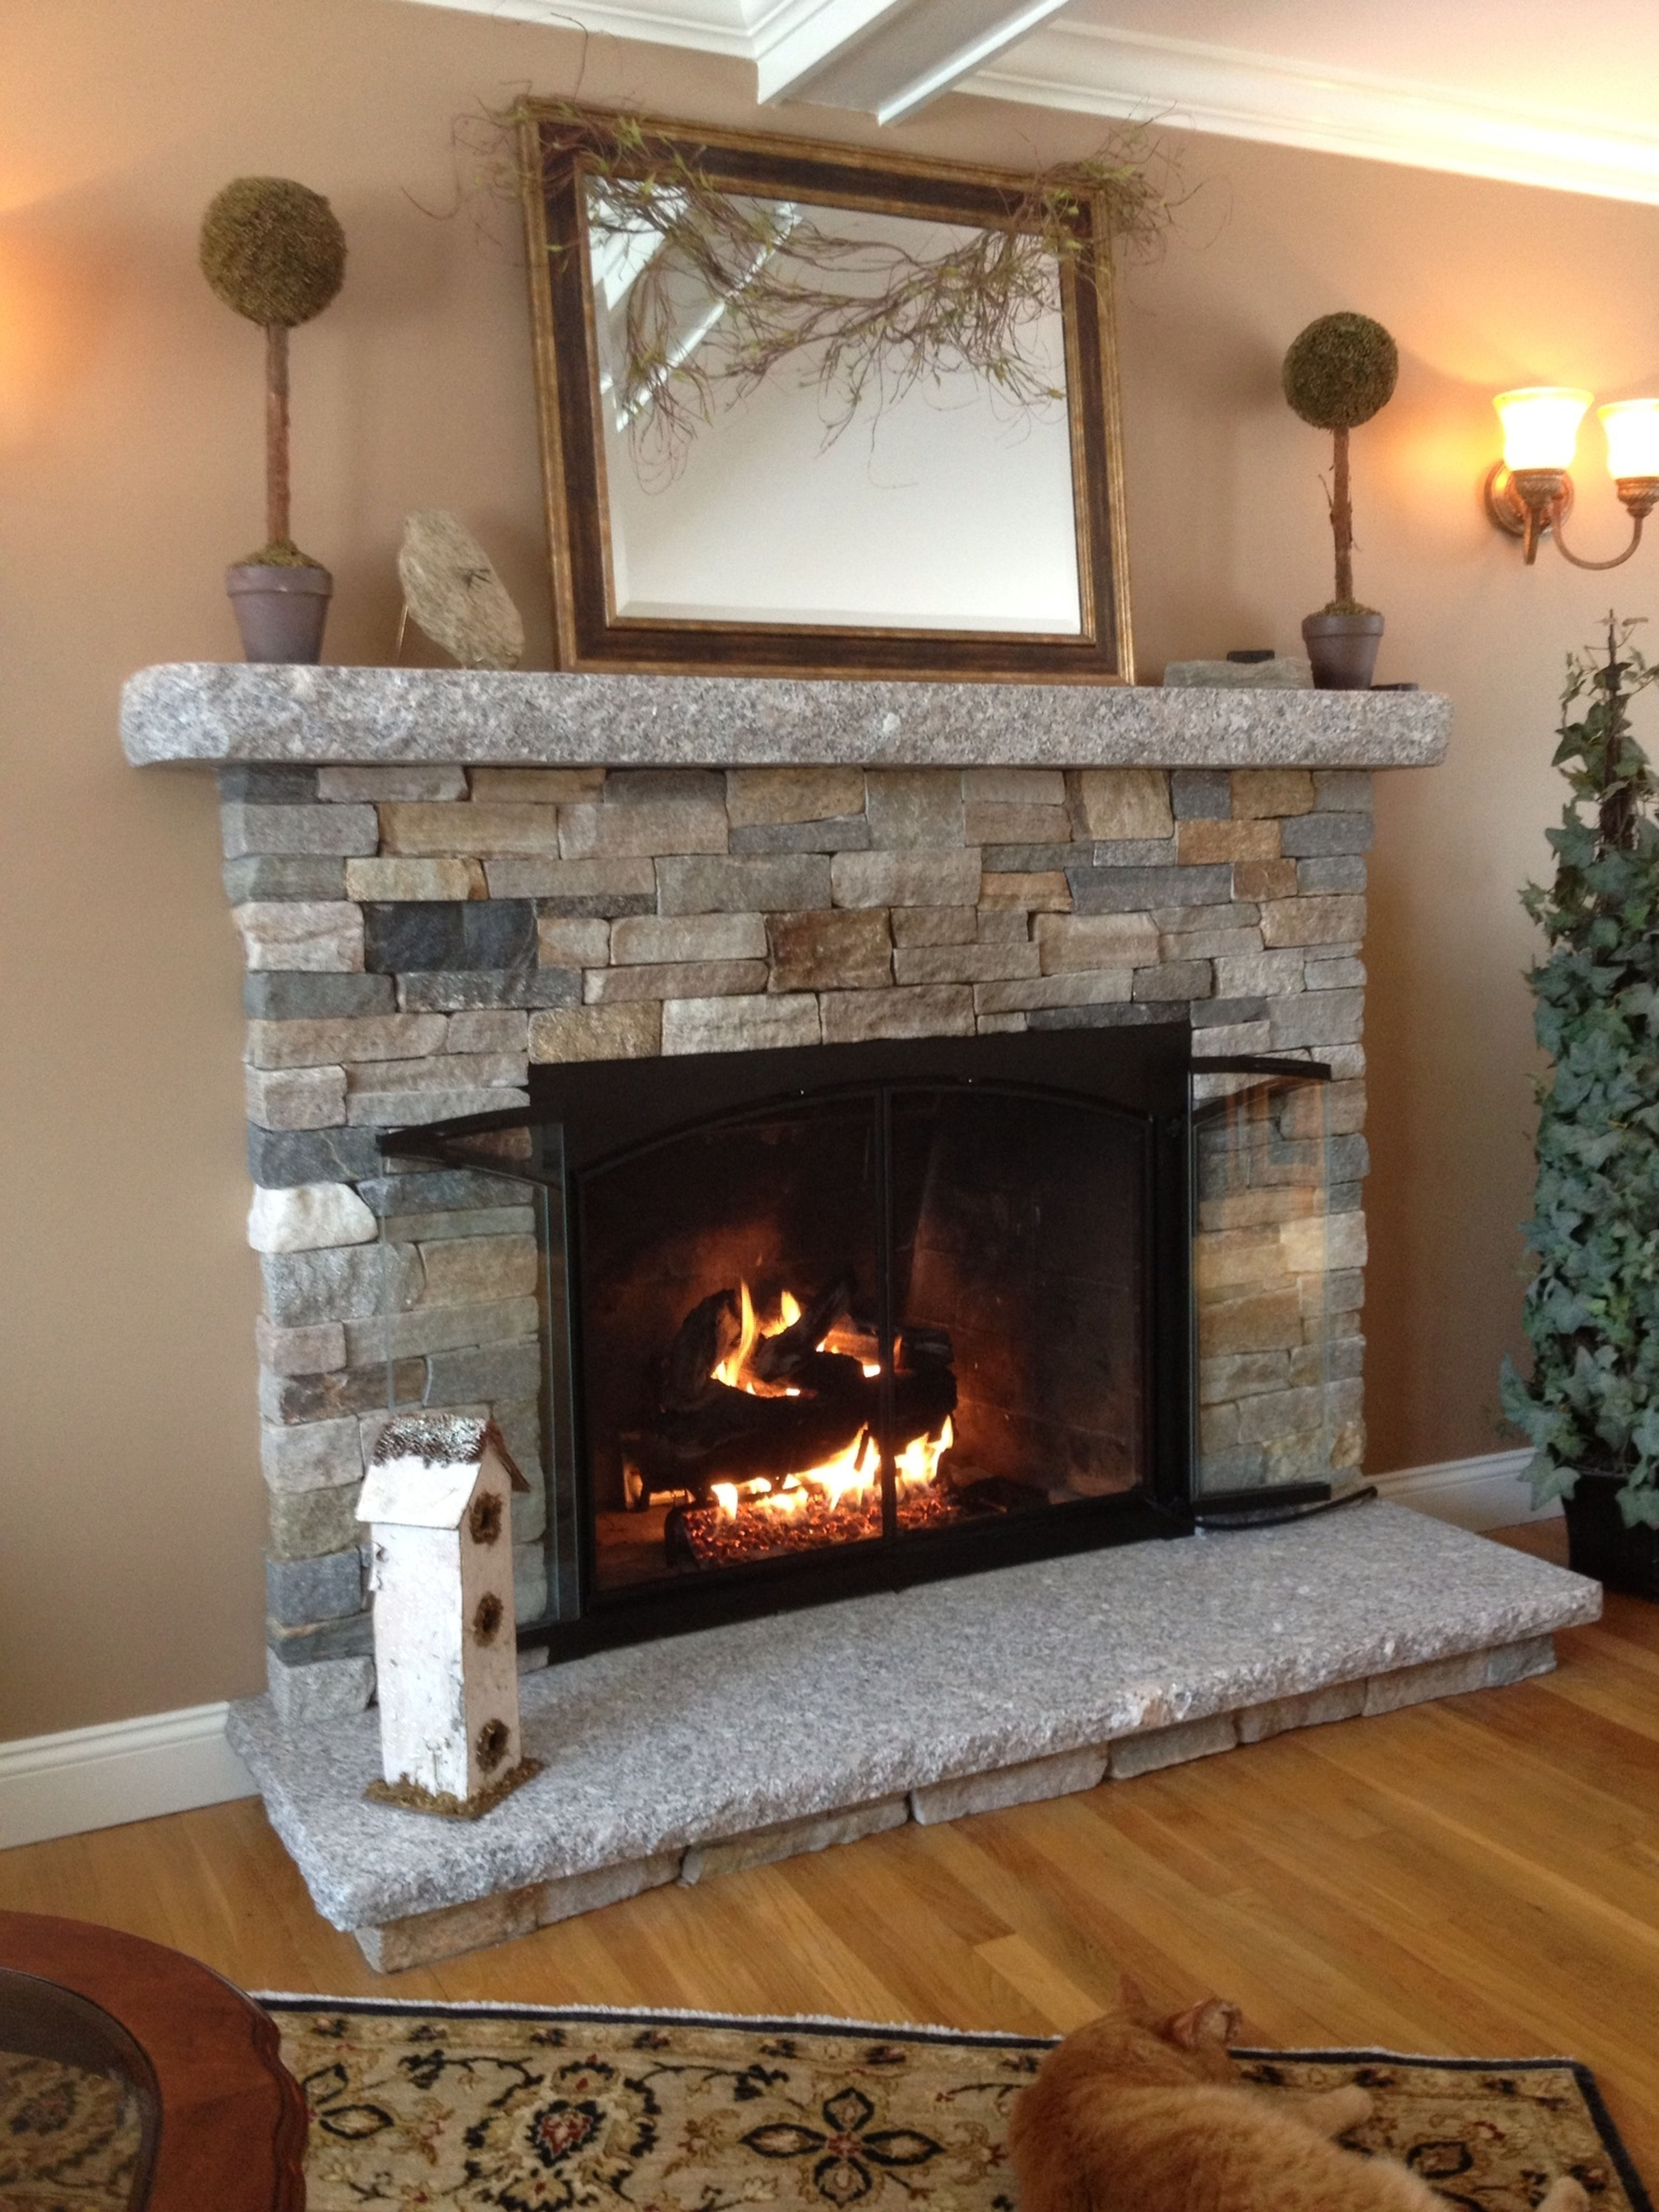 fireplace stone tile ideas fireplace stone tile ideas fresh fireplace stone tile home interior design simple lovely